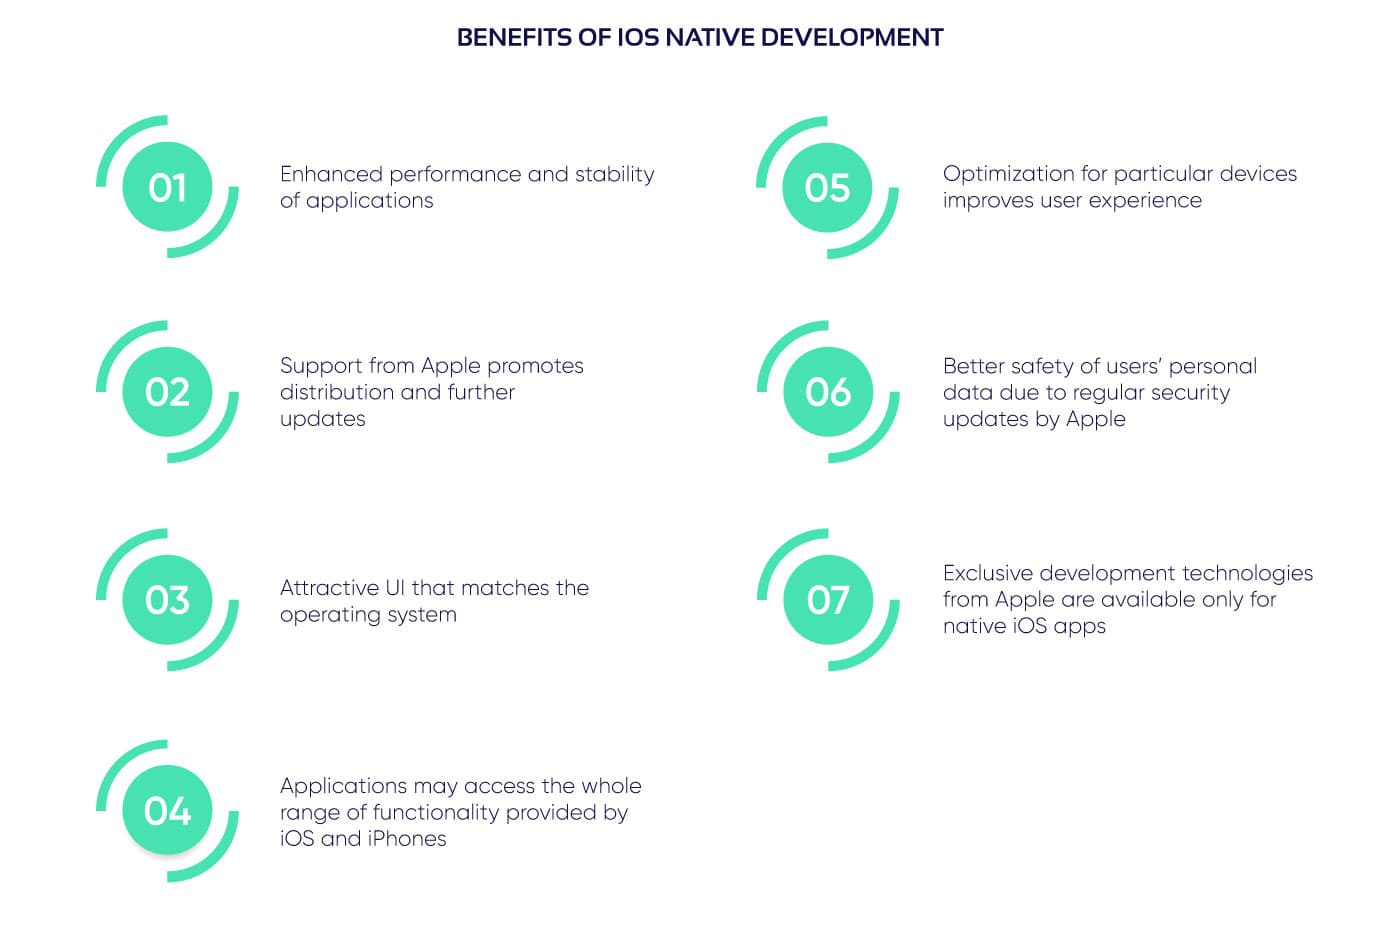 A list of advantages provided by iOS native development